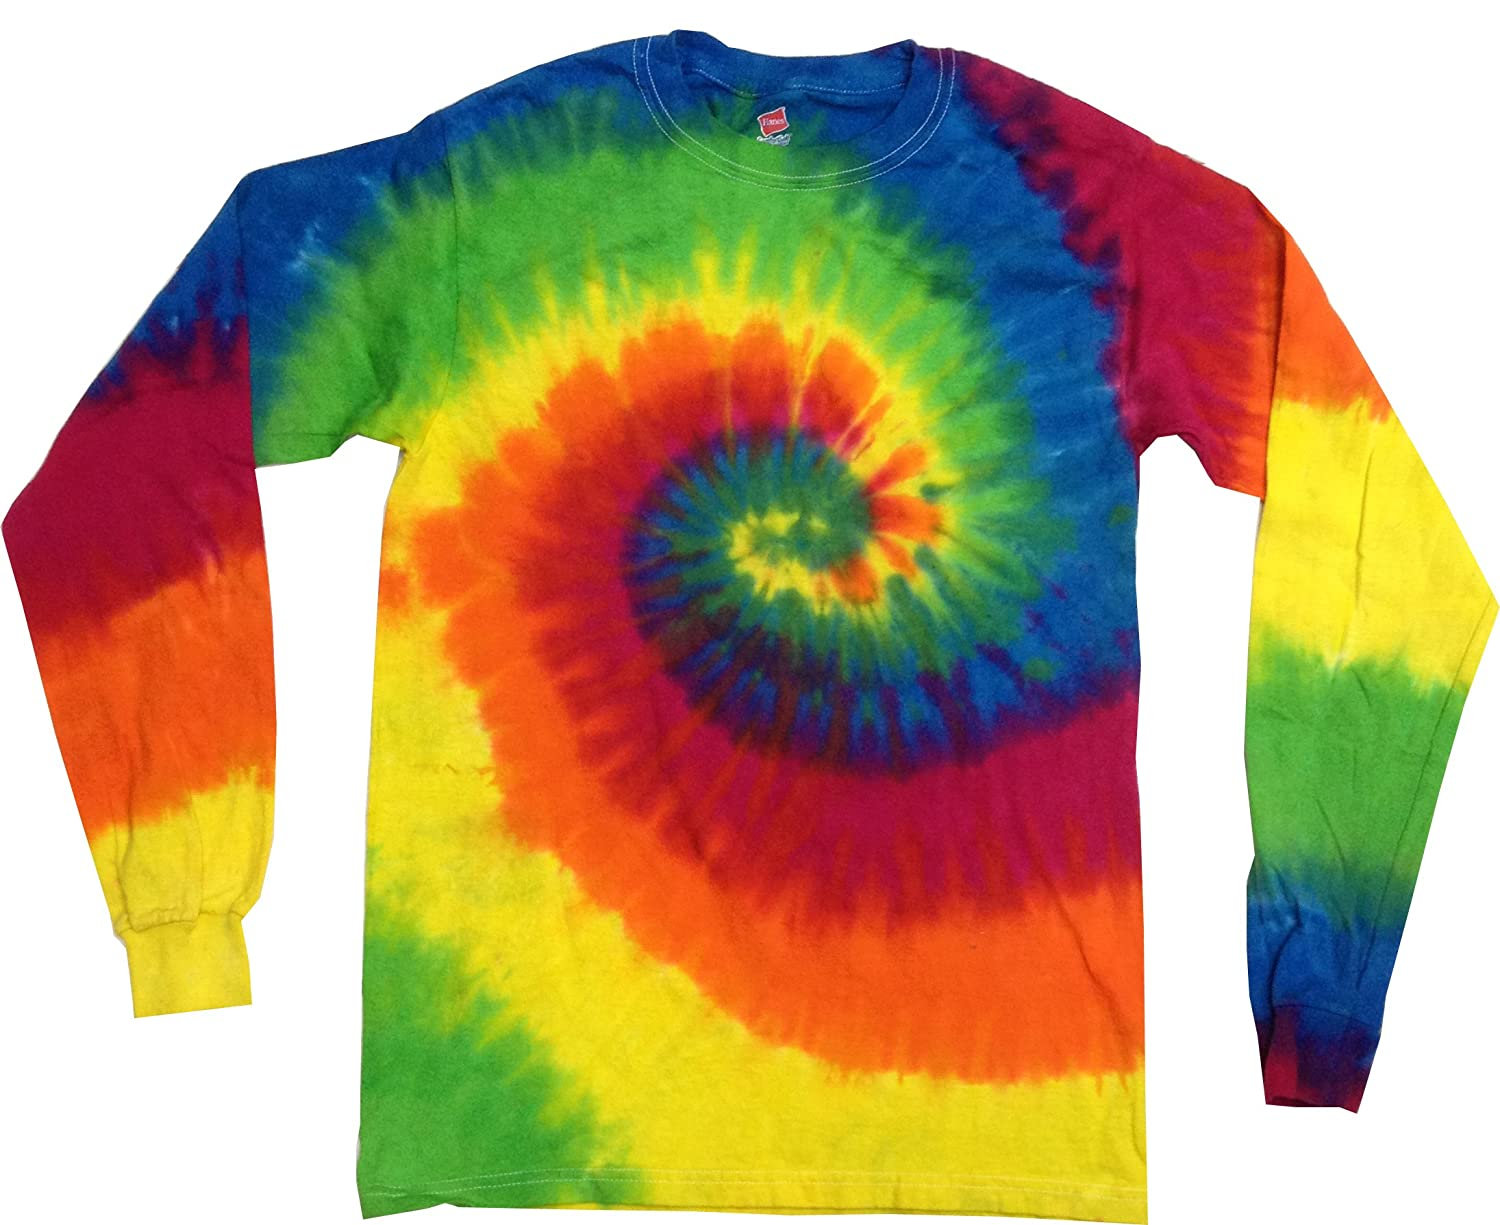 d07fb0f7949 Heavyweight 100% cotton tie dye shirt. Due to tie dye process no two shirts  are exactly alike. Make sure you are purchasing from Buy Cool Shirts for  all ...